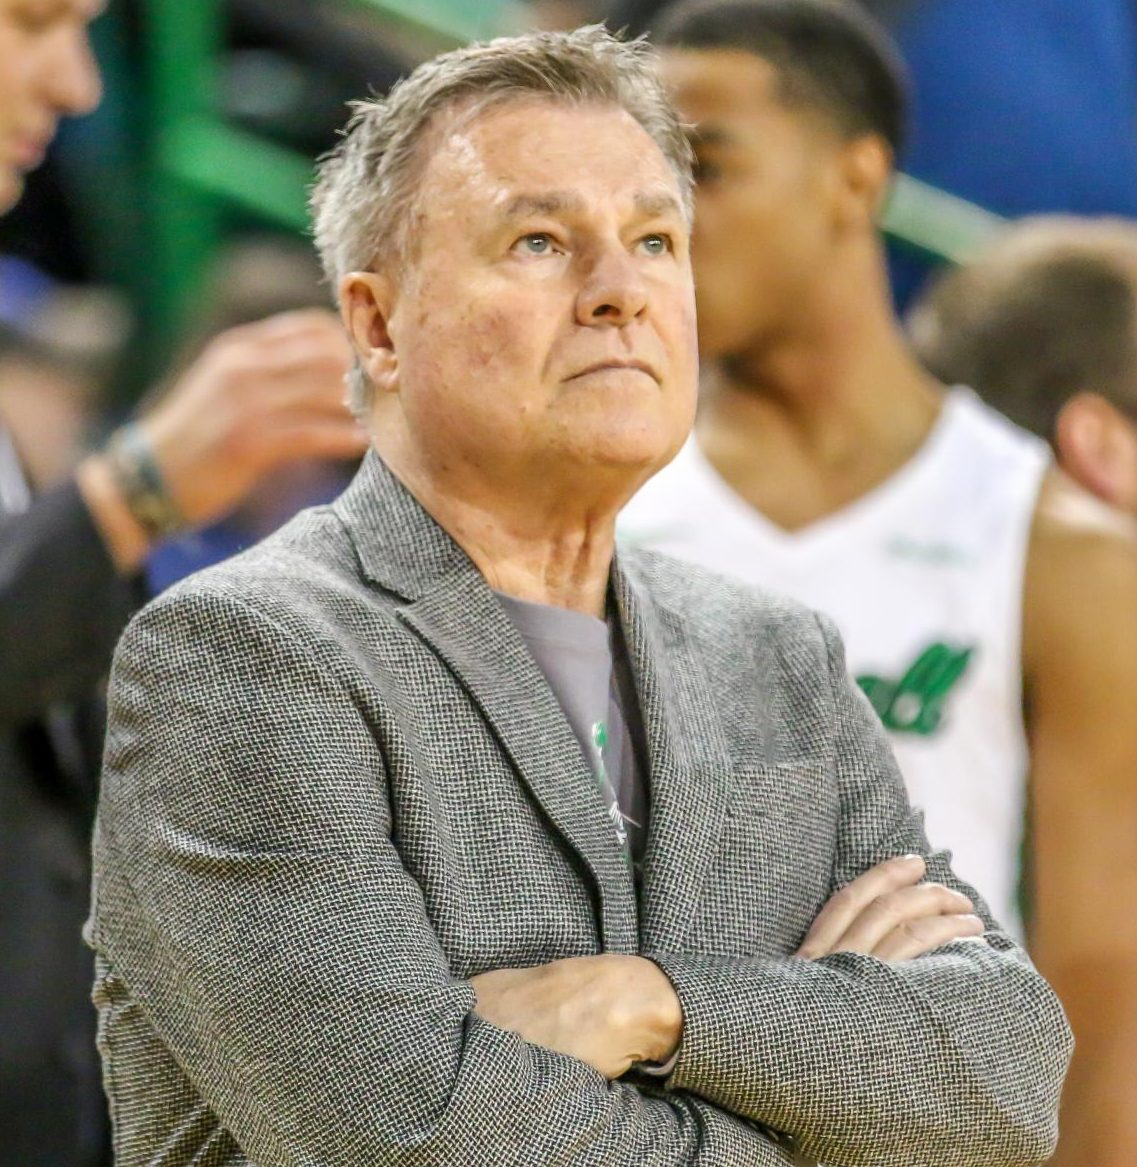 Head coach Dan D'Antoni looks on during Marshall's game against UTEP on Jan. 31, 2019.